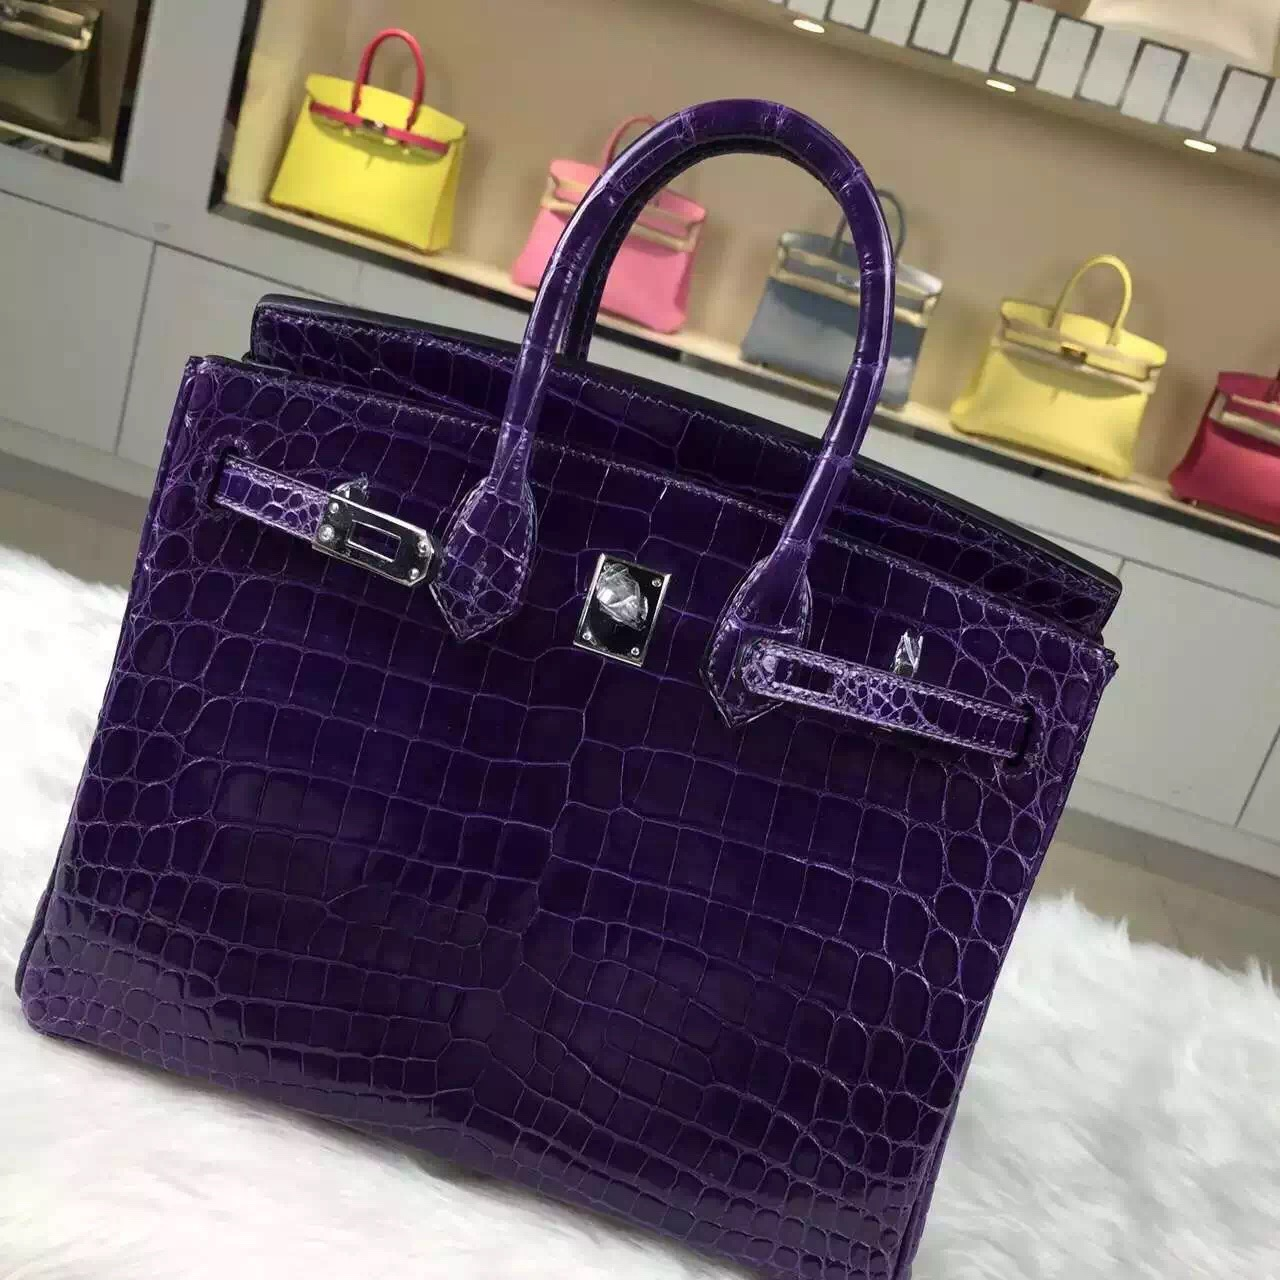 Luxury Ladies' Handbag Hermes 9G Violet HCP Crocodile Shiny Leather Birkin25CM